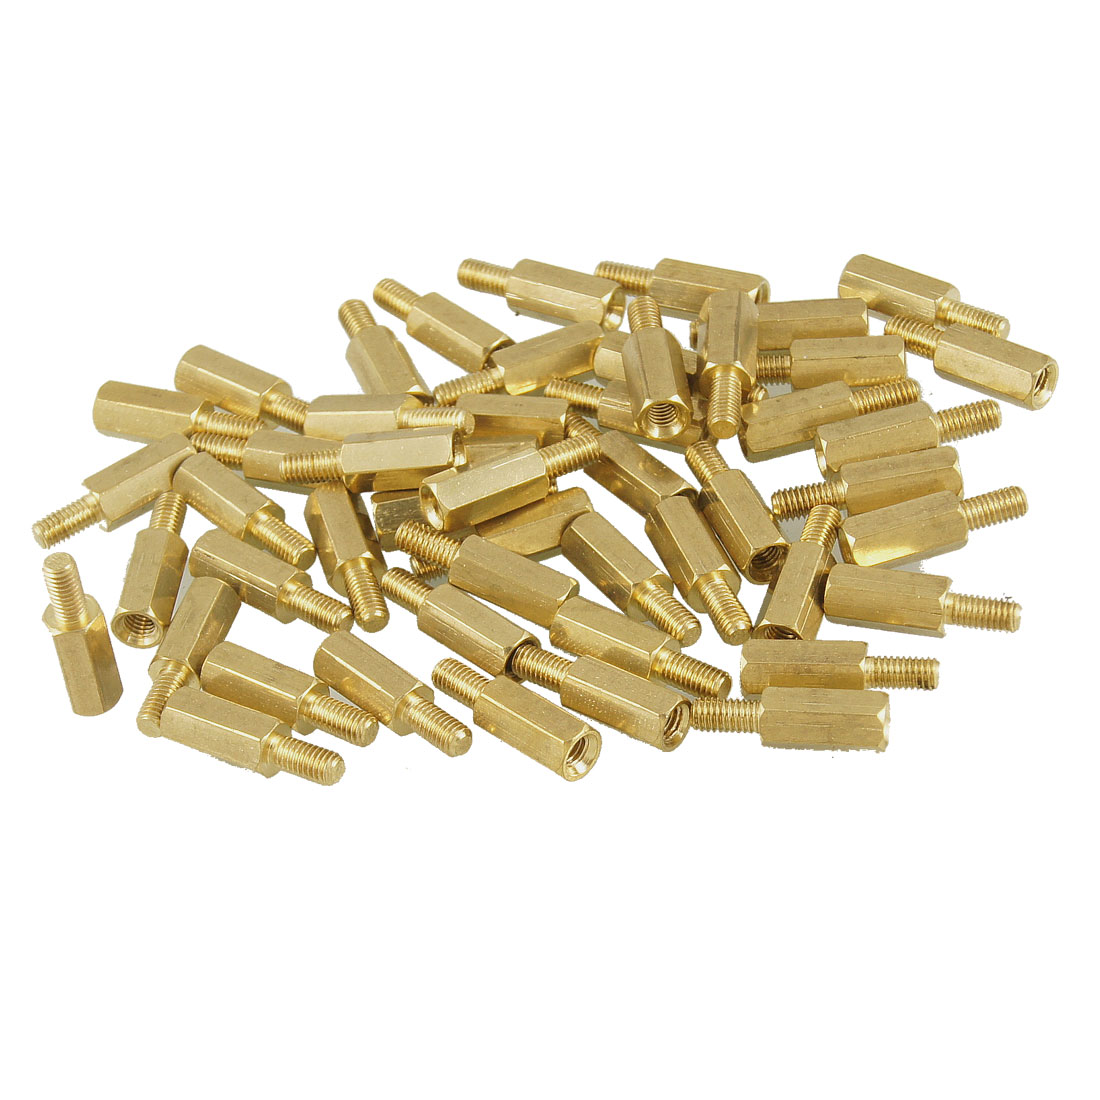 50 Pcs M3 Male x M3 Female 11mm Length Brass Screw Thread PCB Stand-off Spacers